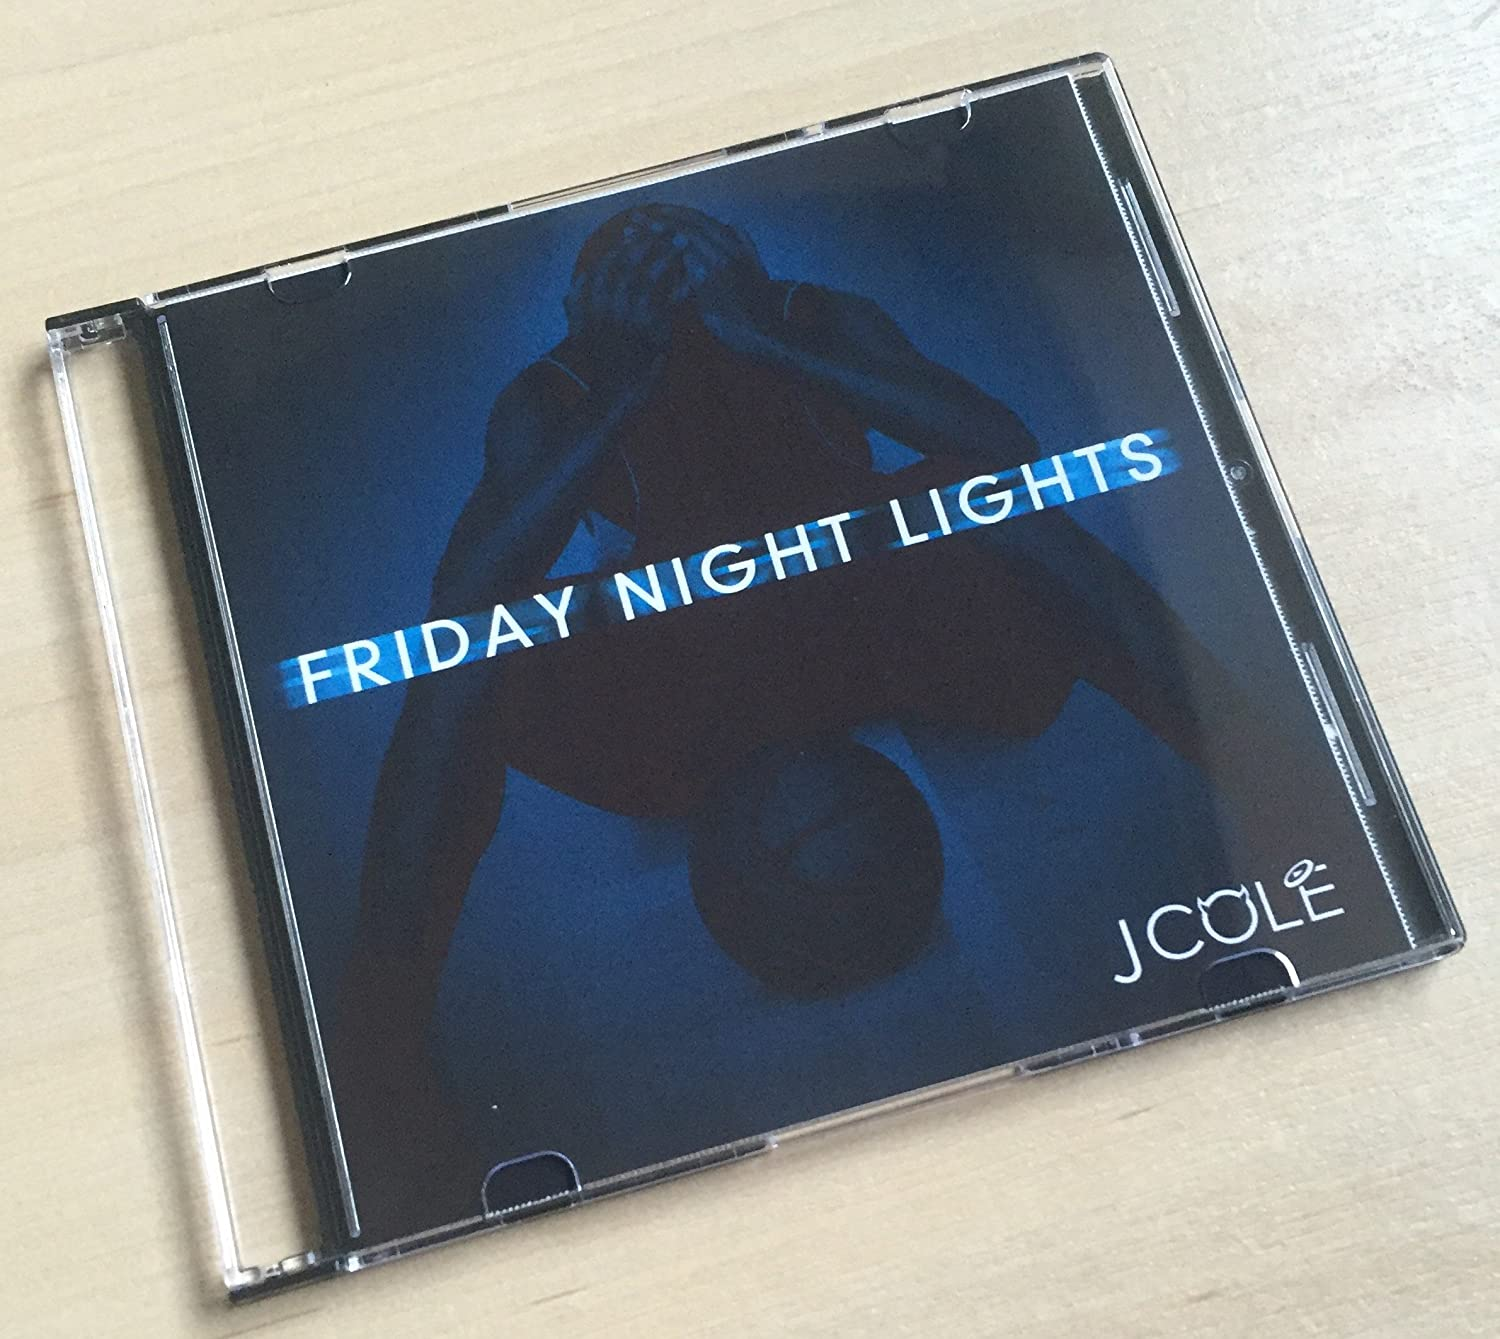 Friday night lights by j cole amazon music aloadofball Image collections